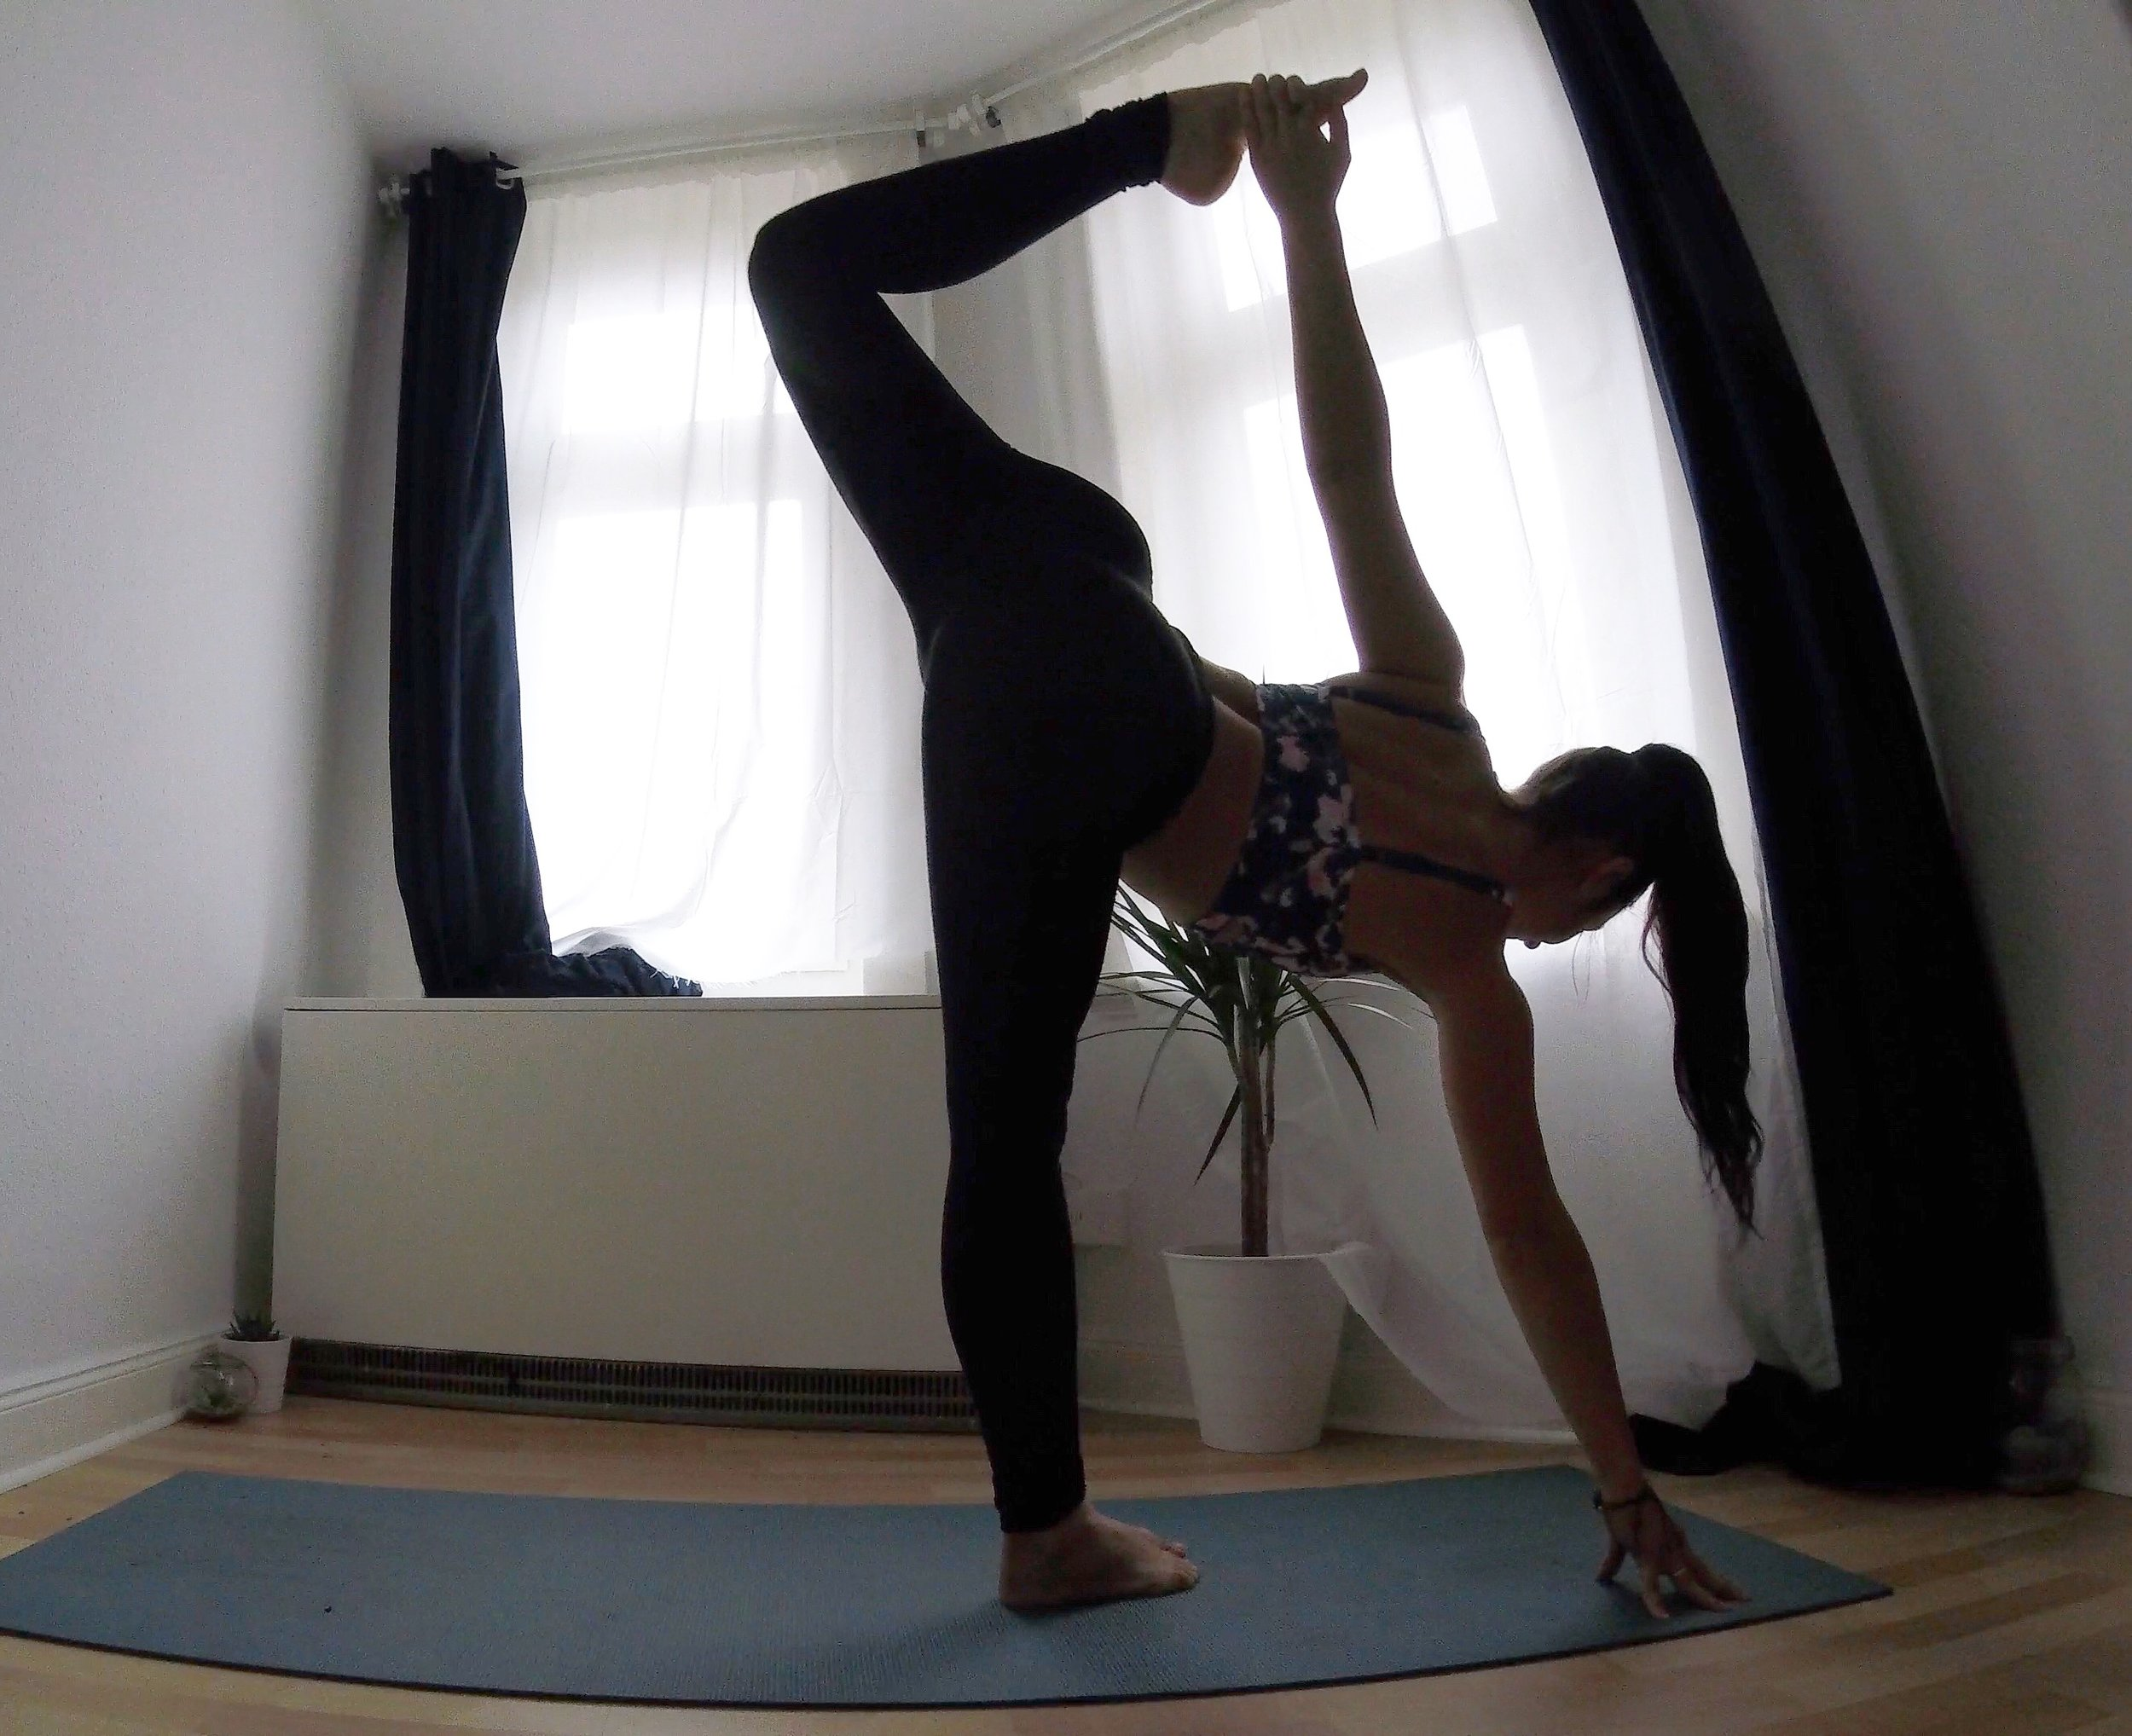 I love the yoga space that I have in my bedroom to practice.